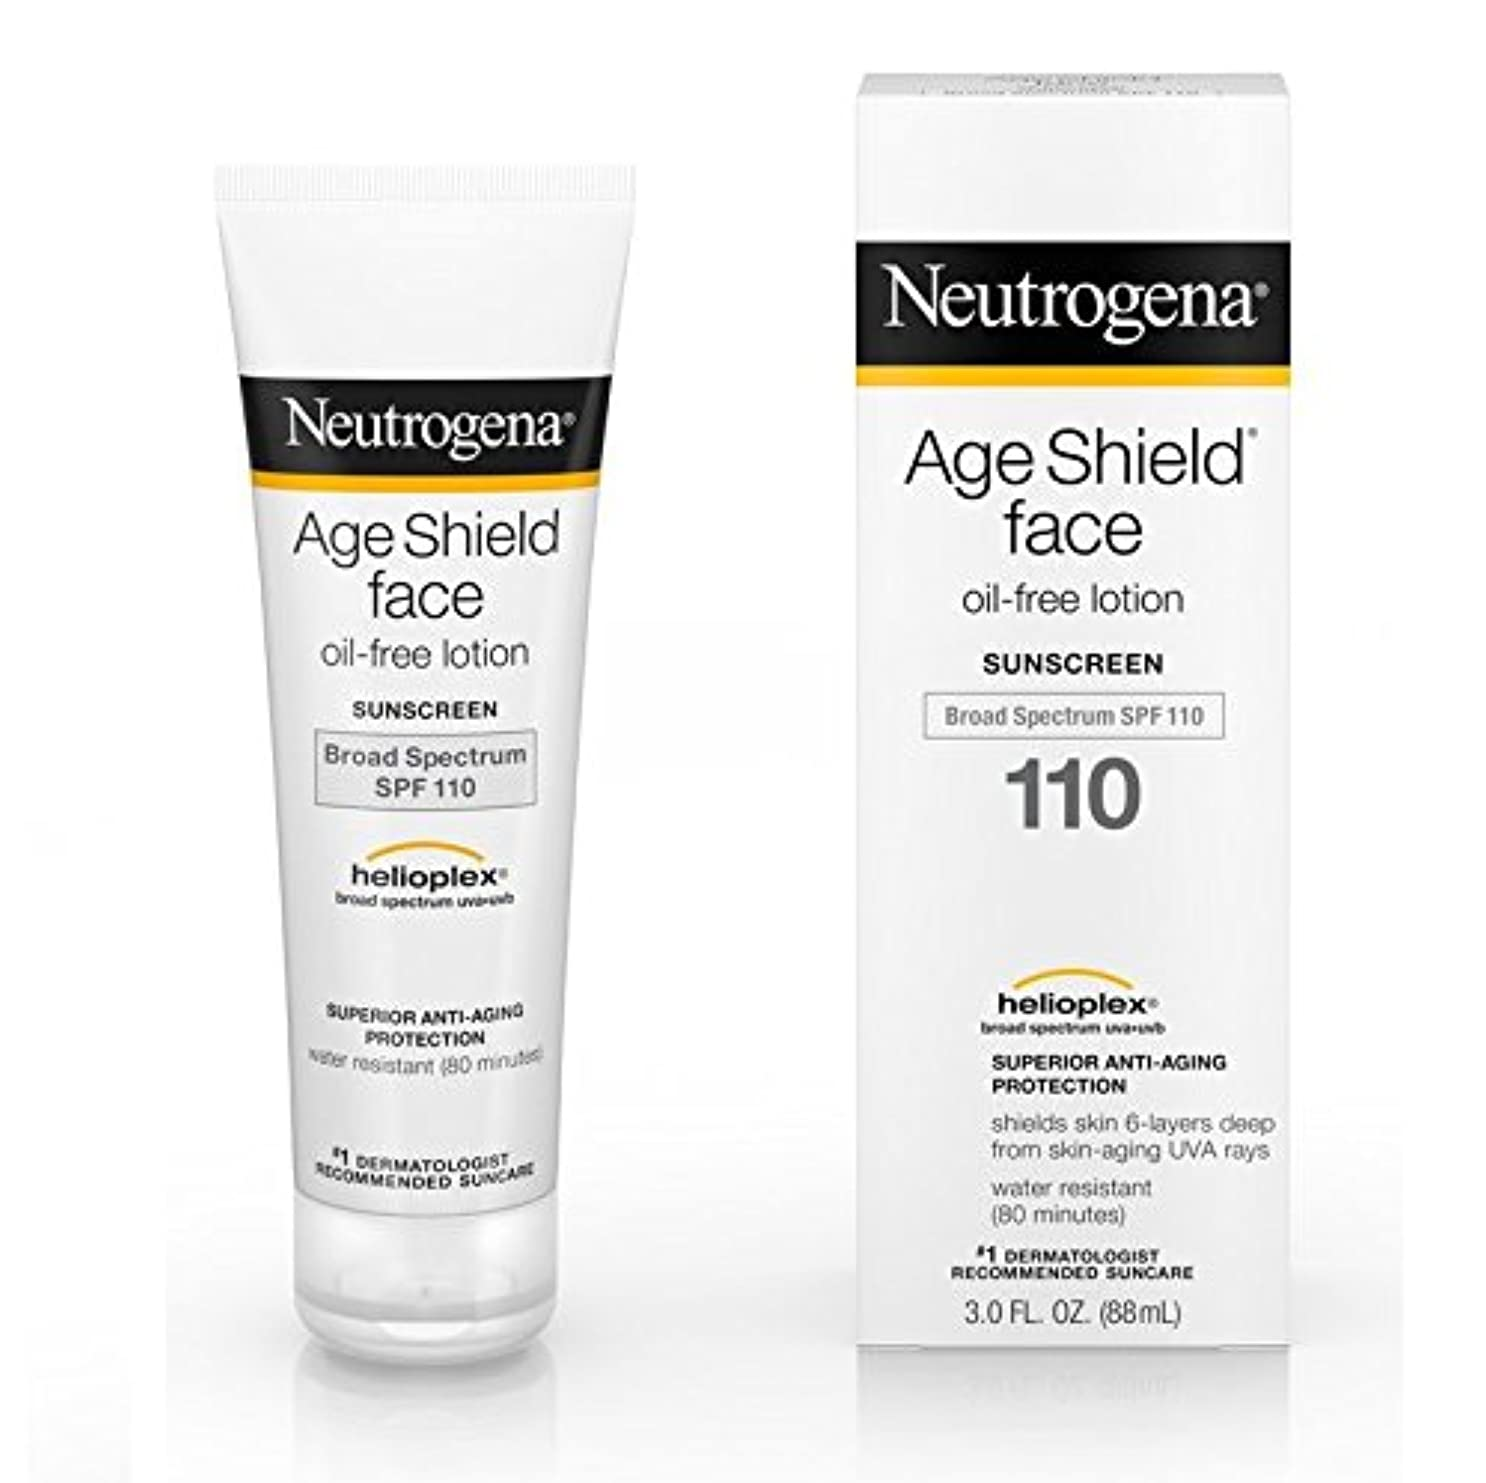 上記の頭と肩急性植生【海外直送品】Neutrogena Age Shield® Face Oil-Free Lotion Sunscreen Broad Spectrum SPF 110 - 3 FL OZ(88ml)